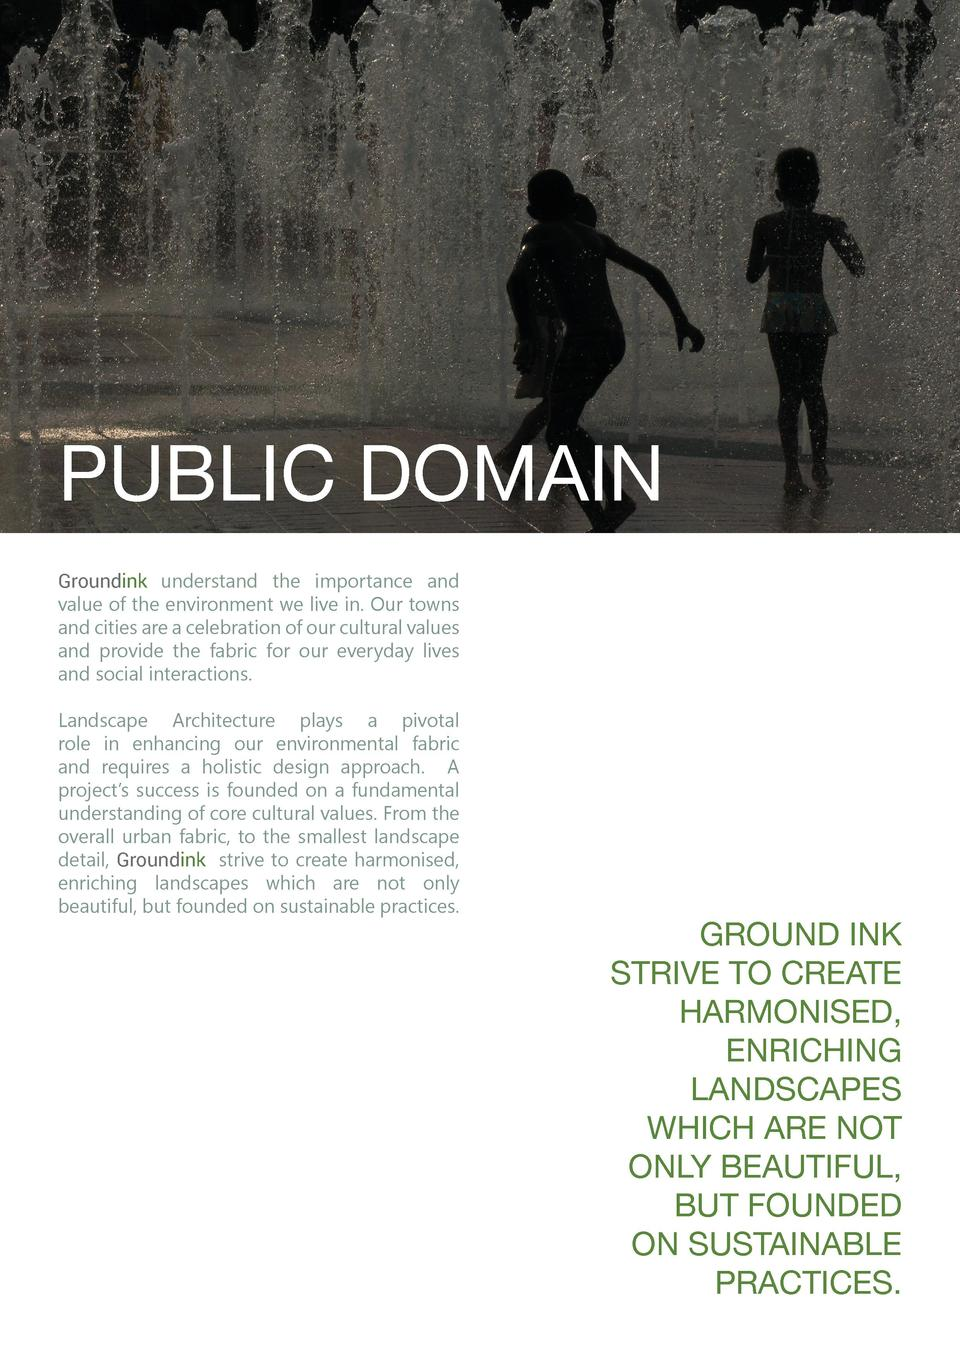 PUBLIC DOMAIN Groundink understand the importance and value of the environment we live in. Our towns and cities are a cele...